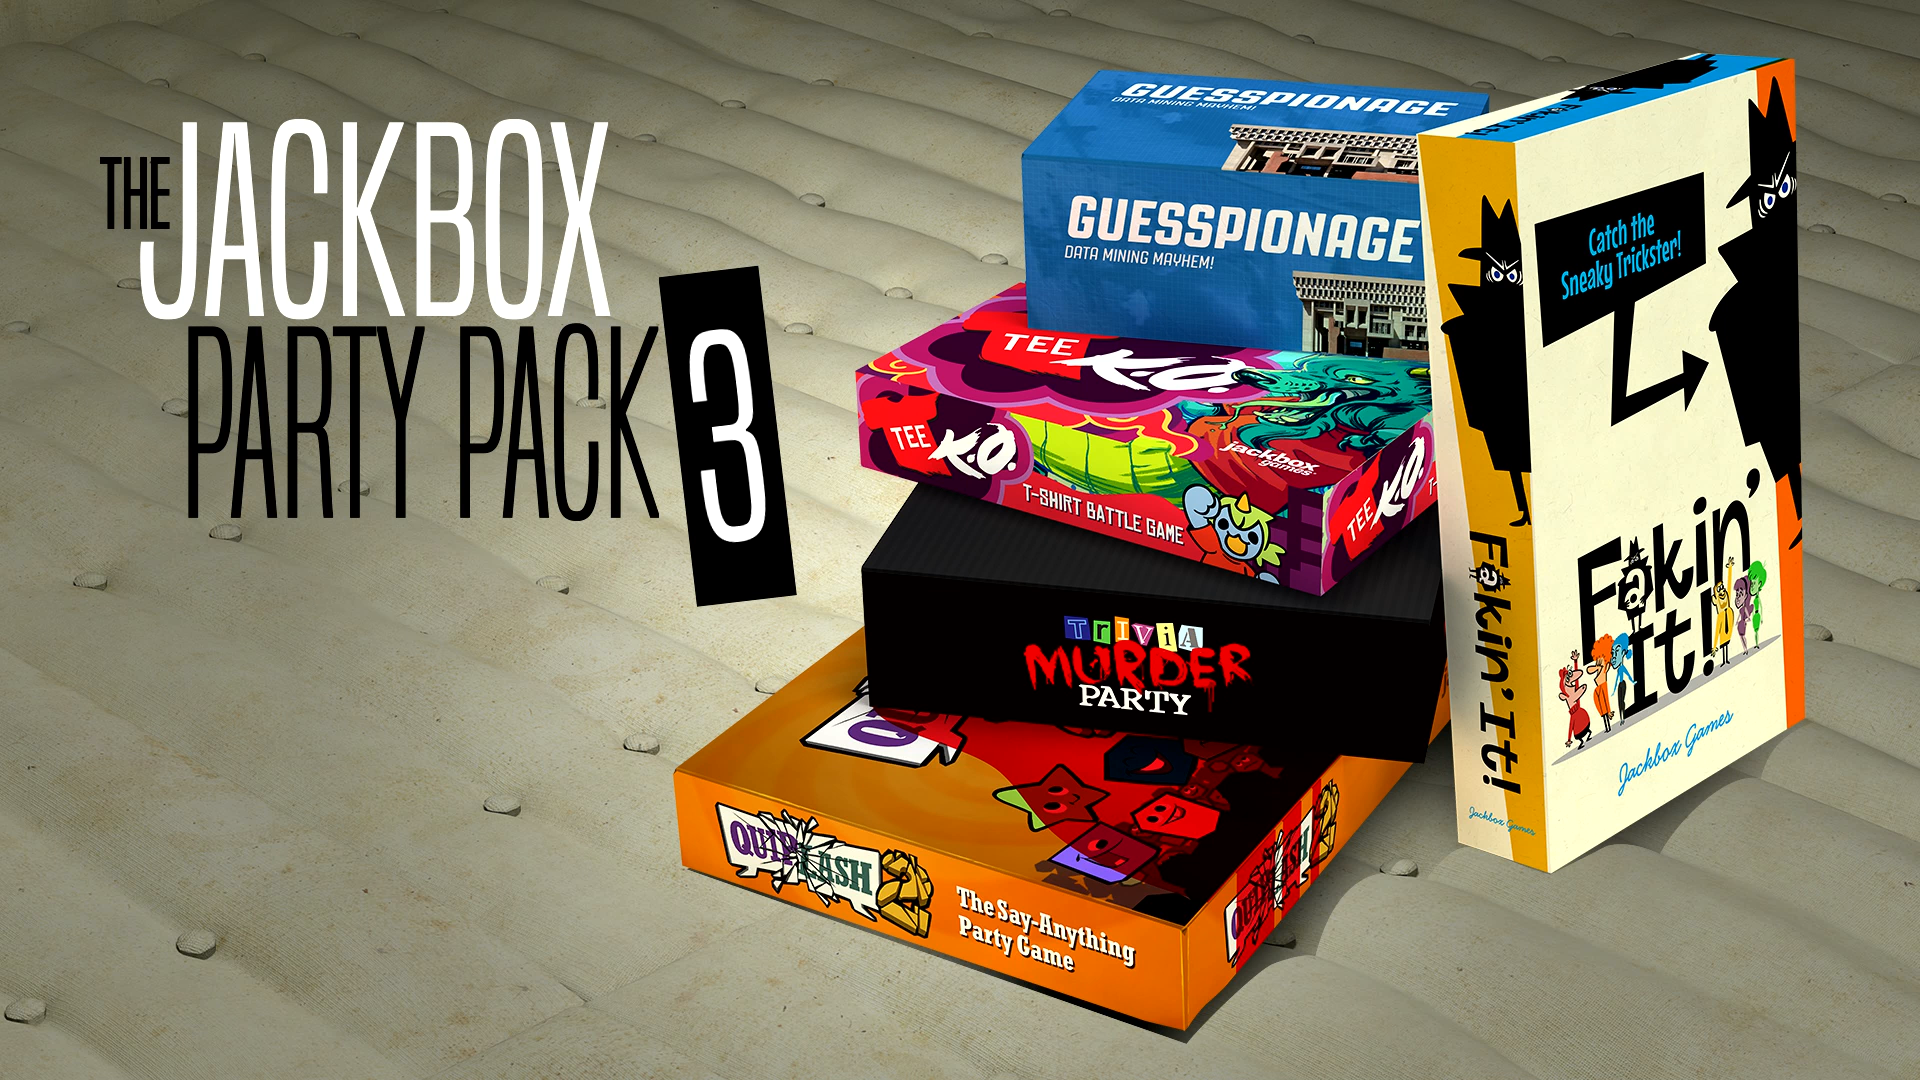 Jackbox Party Pack 3 Coming To The Nintendo Switch eShop On April 13th